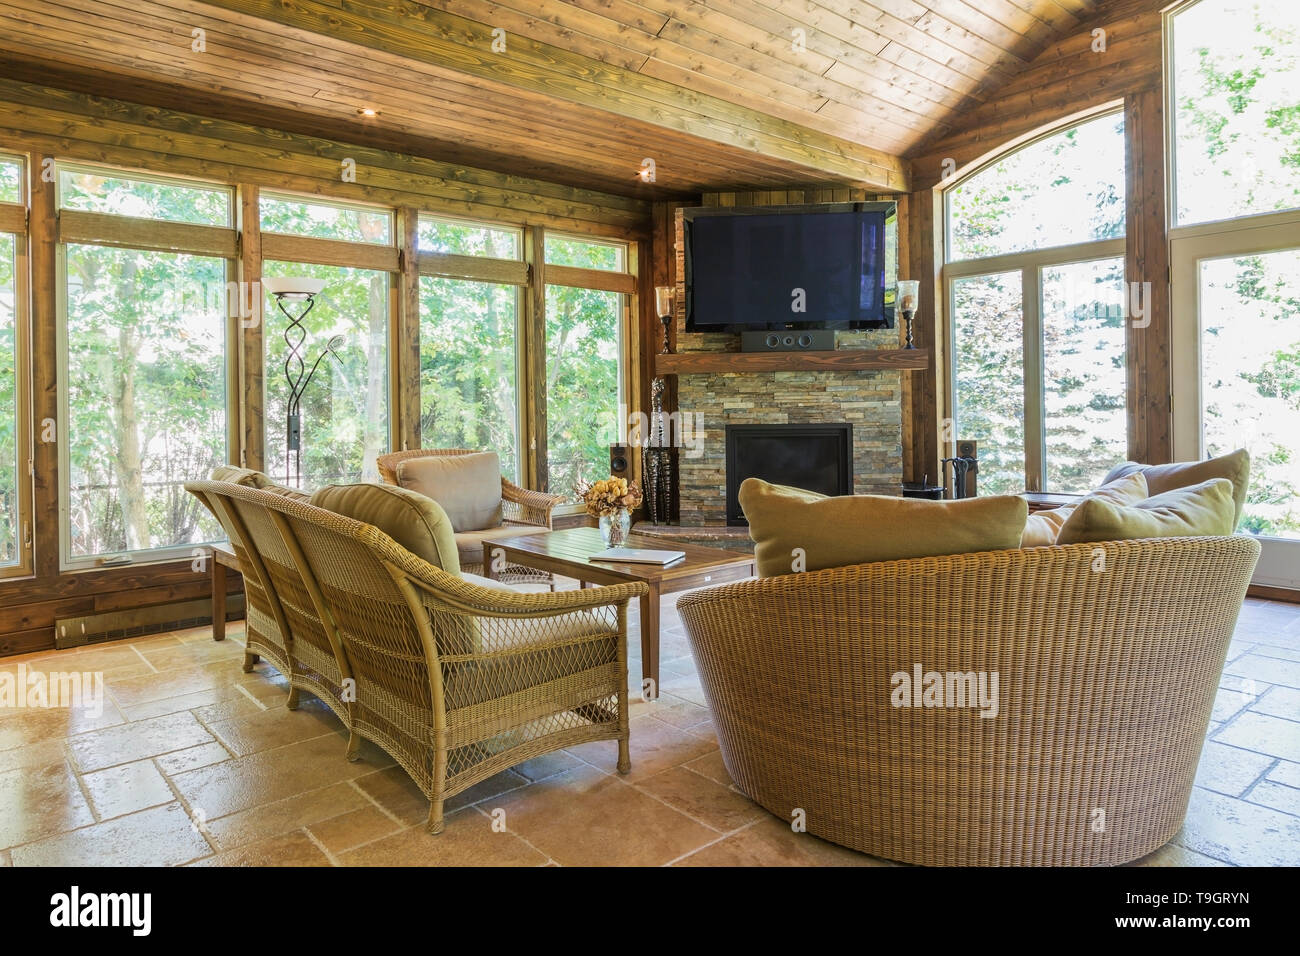 Wicker Chairs And Sofa In Solarium With Tan Marble Tile Floor